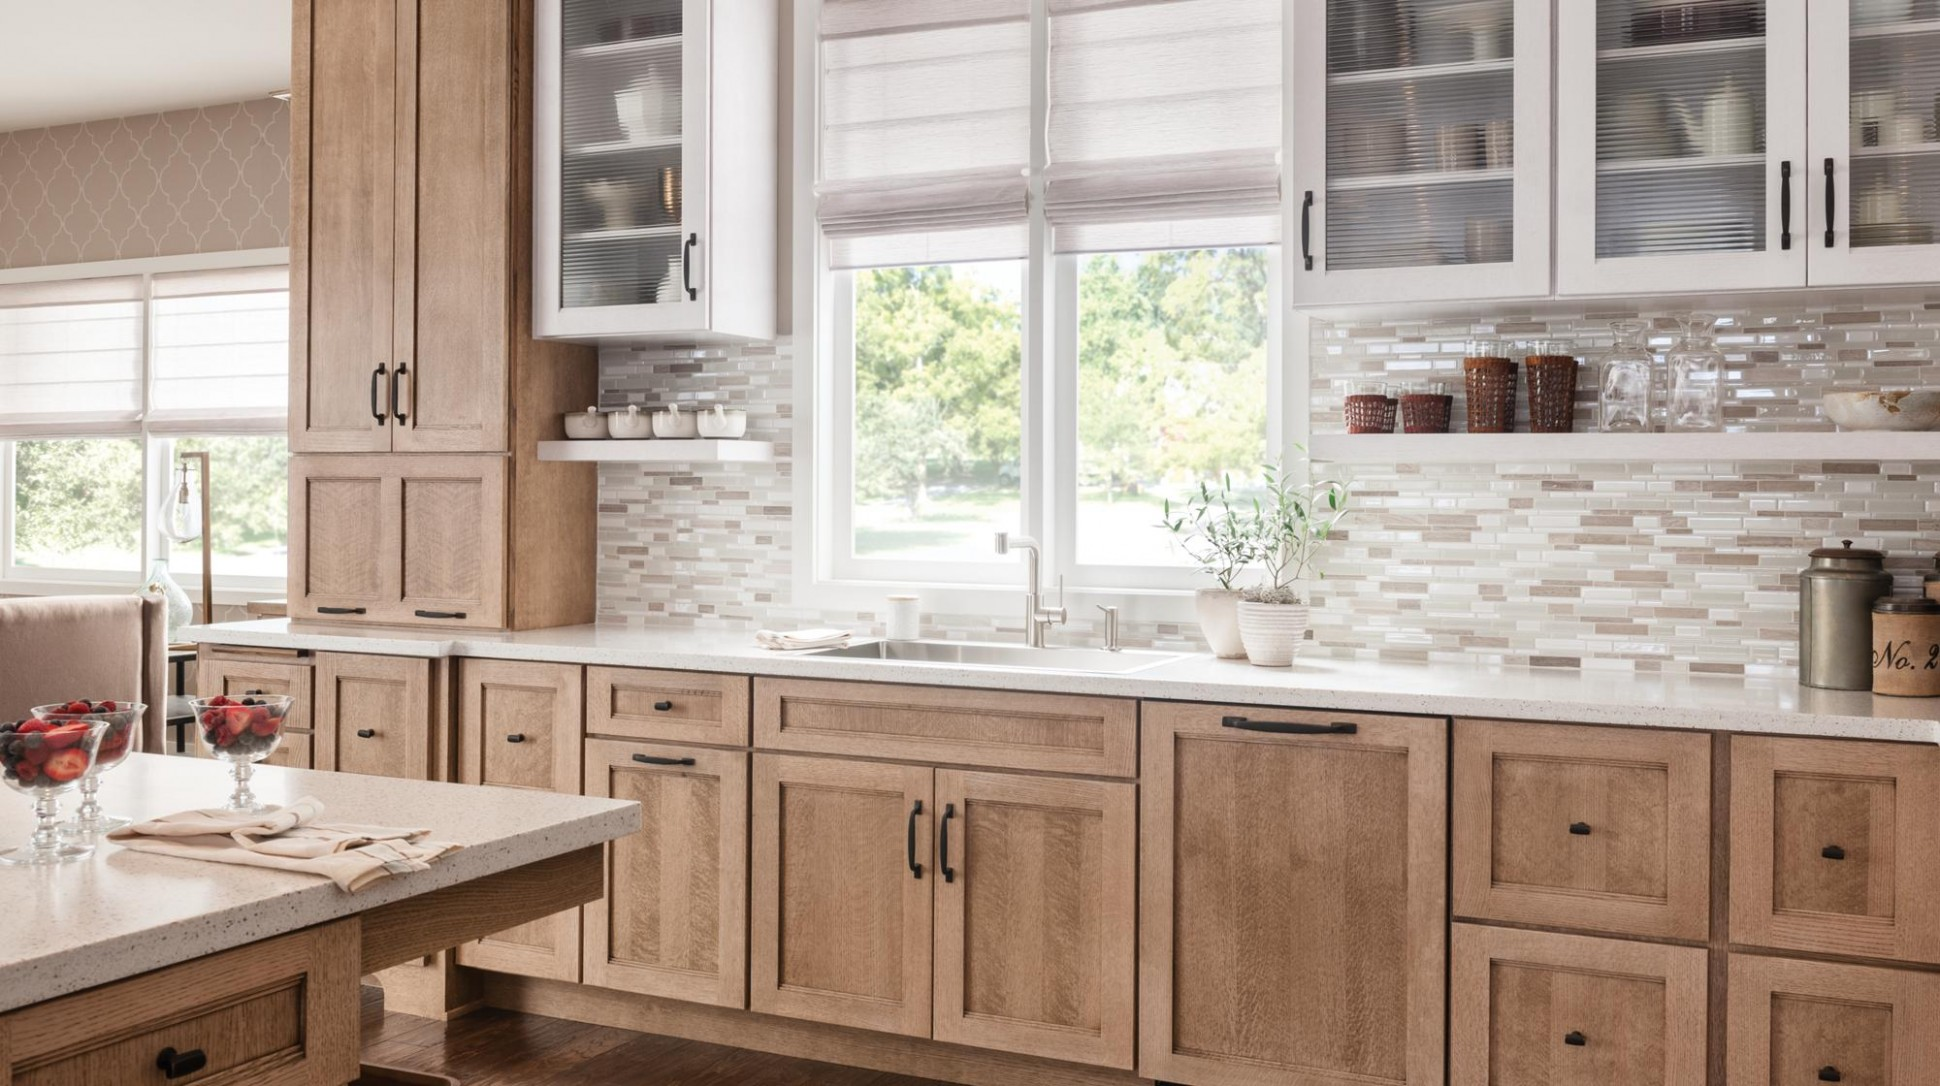 Schuler Cabinetry at Lowes  New Finish: Cappuchino - Lowes Cherry Wood Kitchen Cabinets